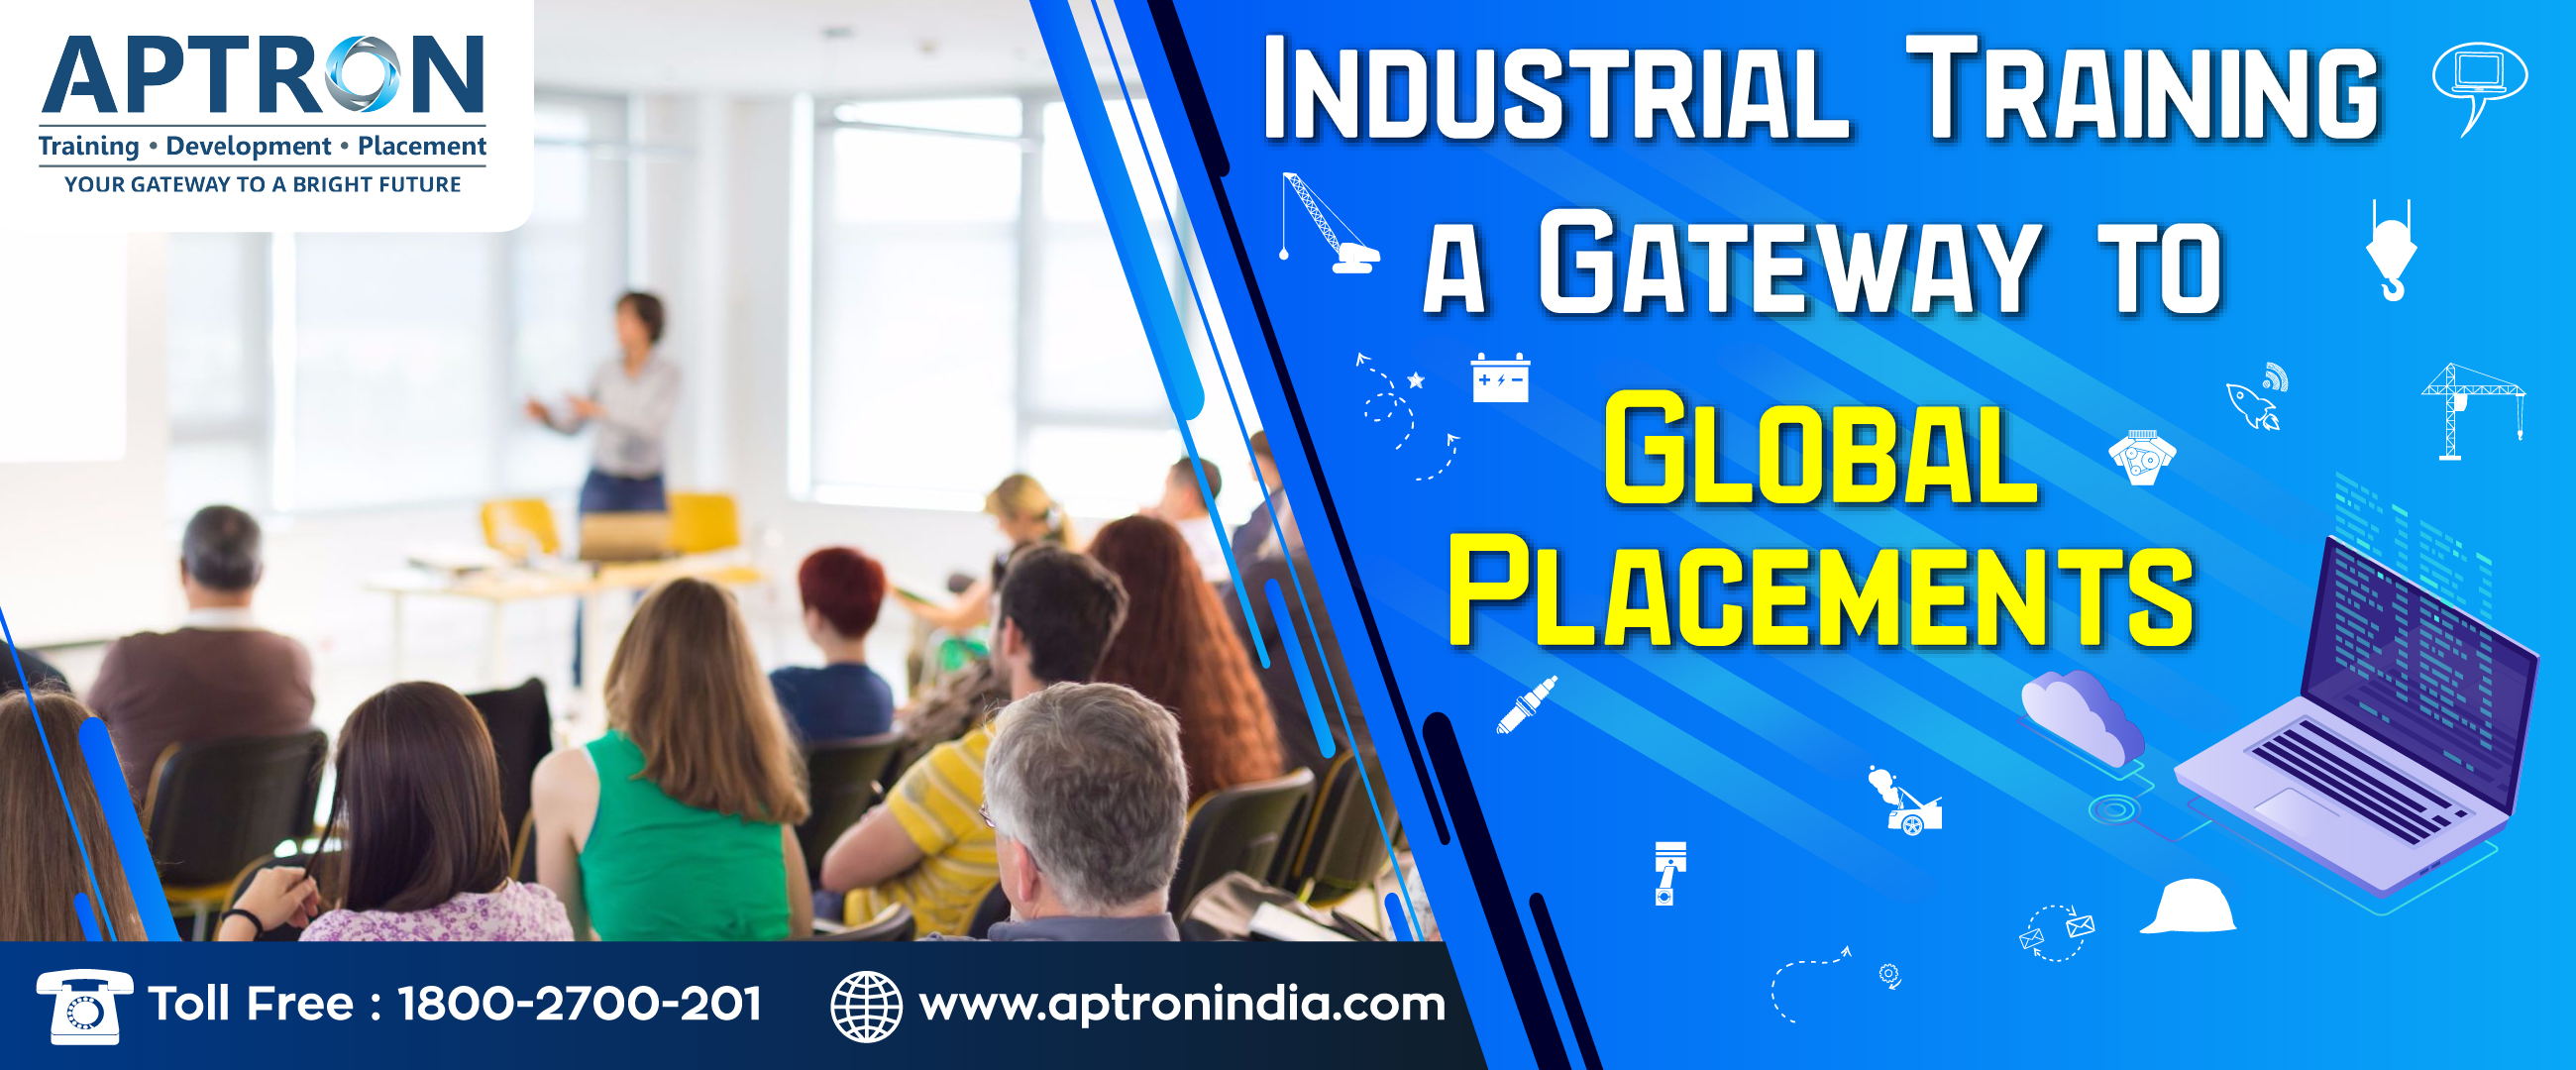 Industrial Training a Gateway to Global Placements